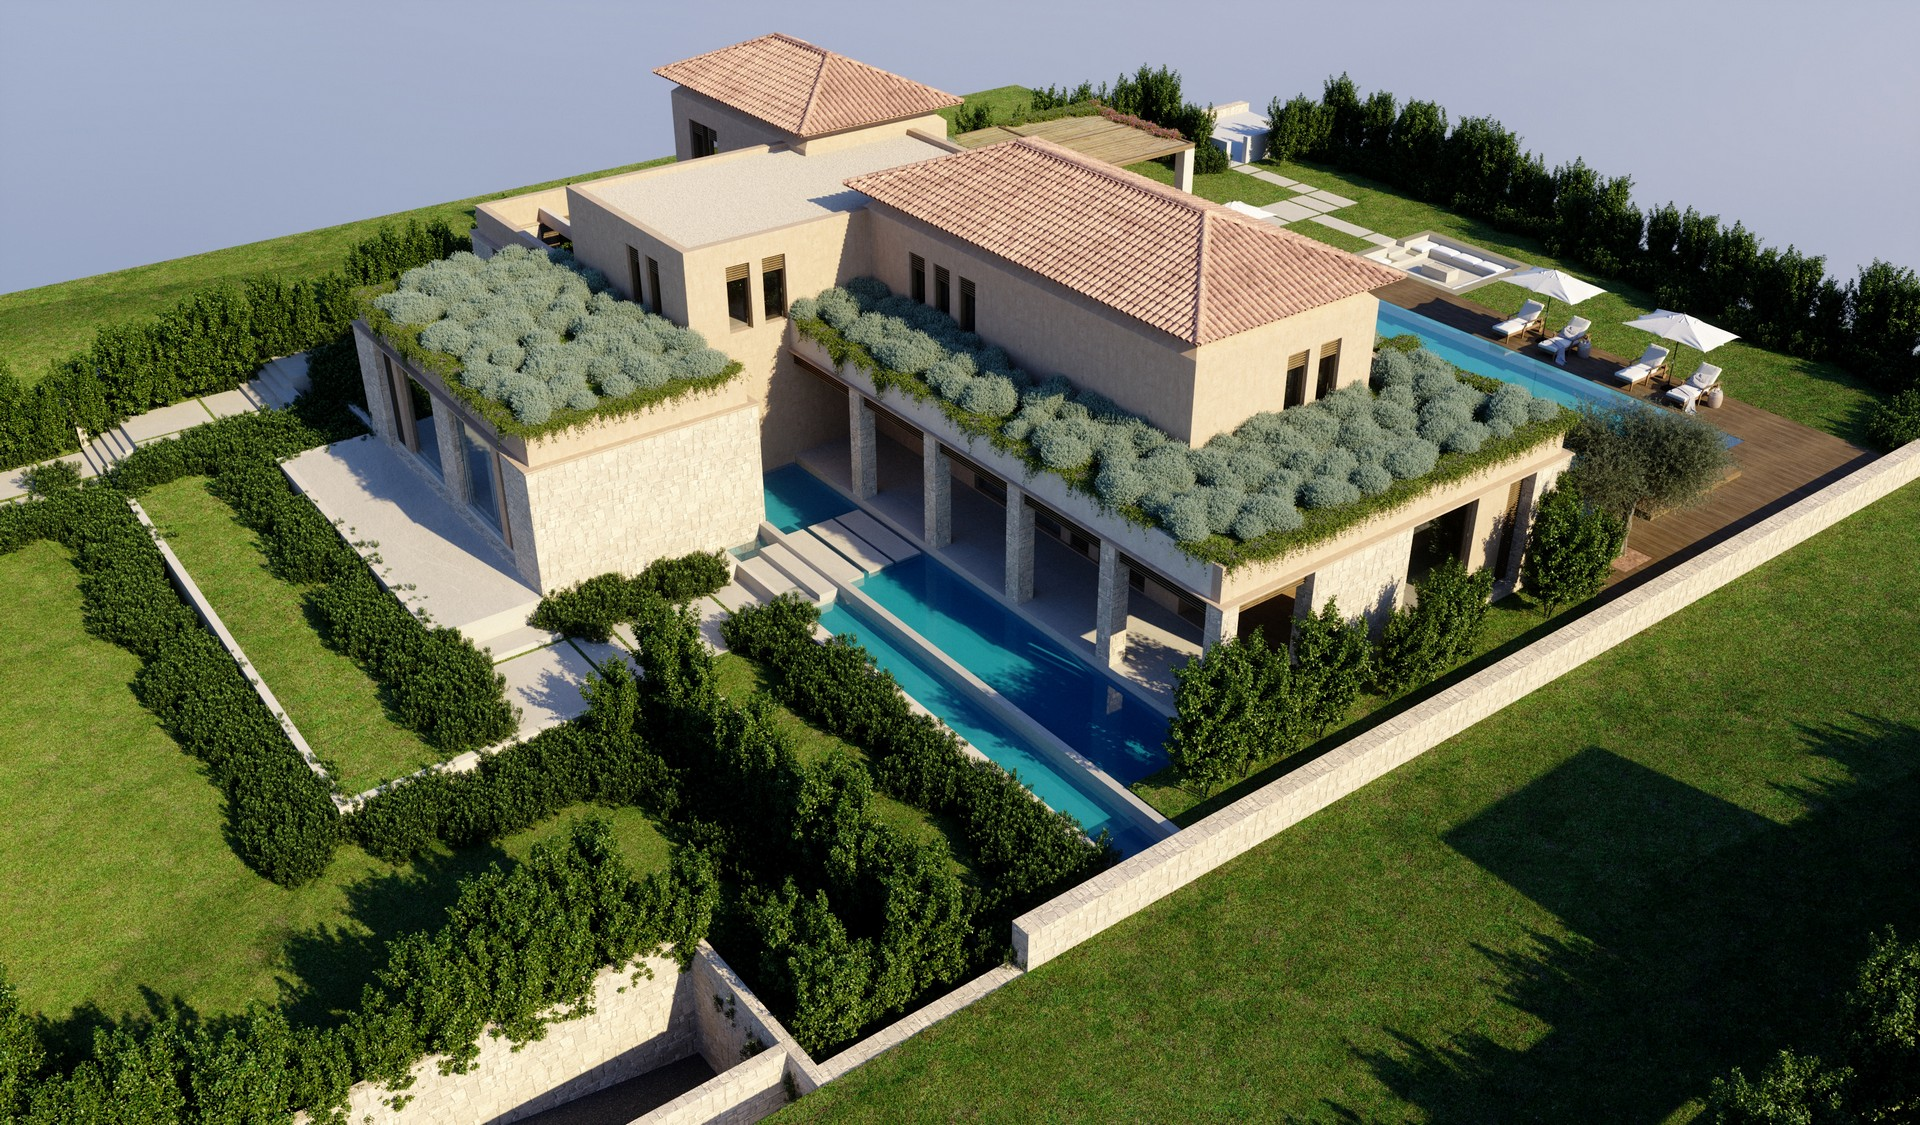 Residential Villa In The Peloponesse